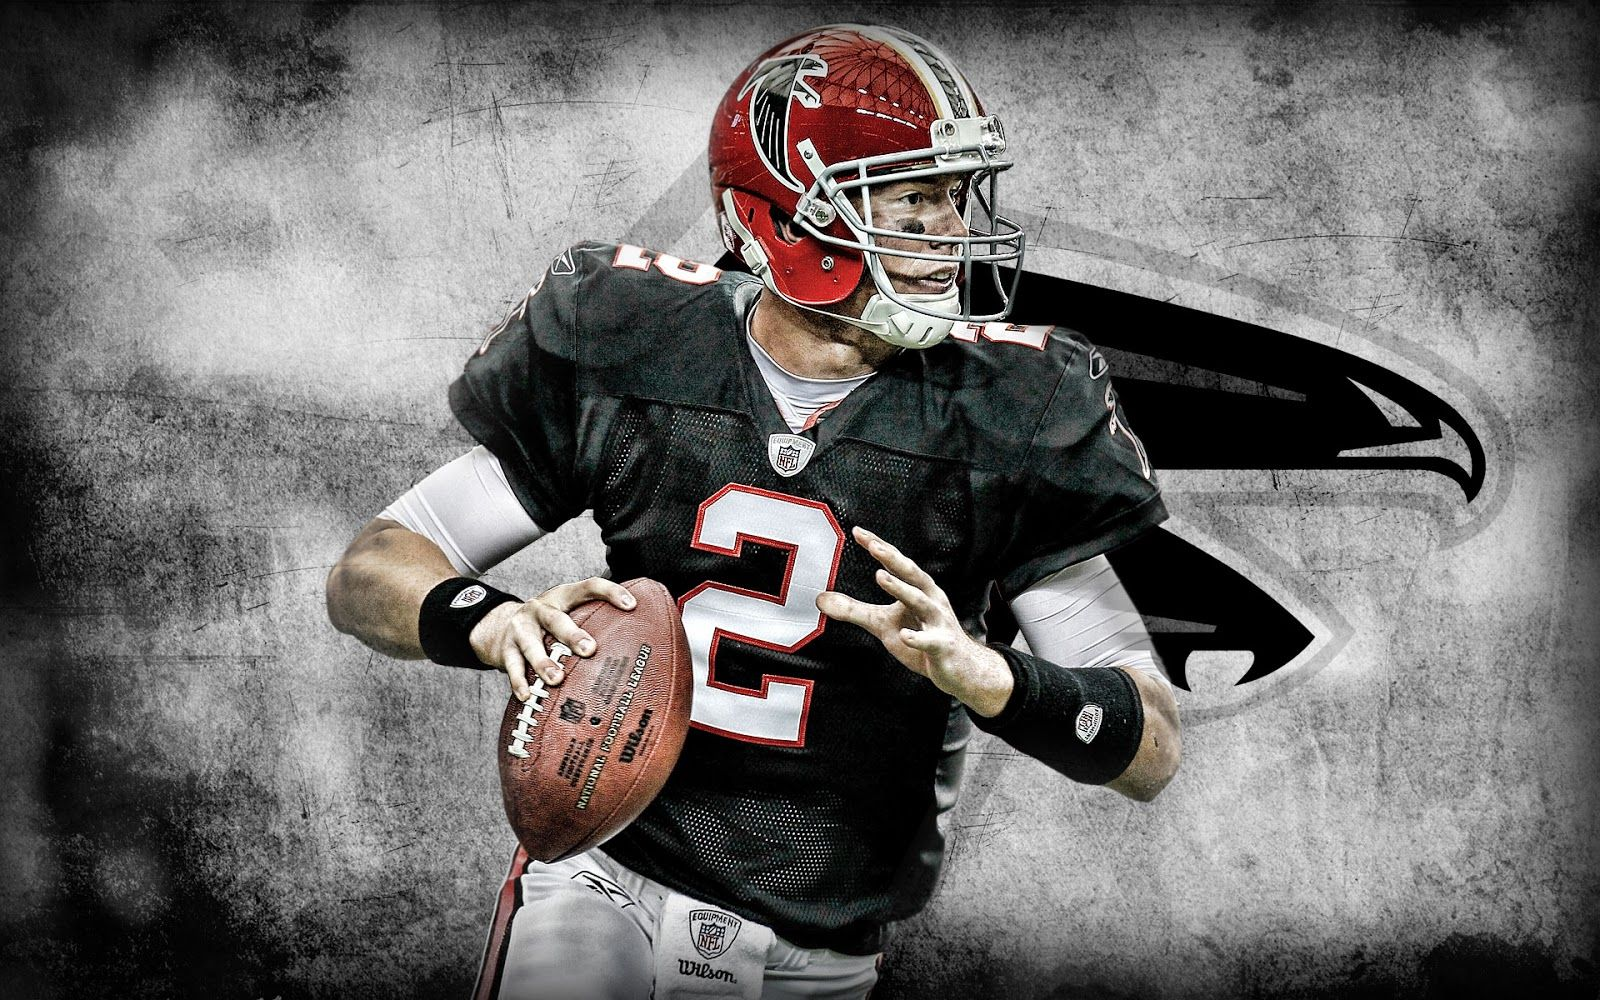 Falcons Wallpaper 14637 1600x1000 Px Hdwallsource Com Atlanta Falcons Football Atlanta Falcons Atlanta Falcons Art